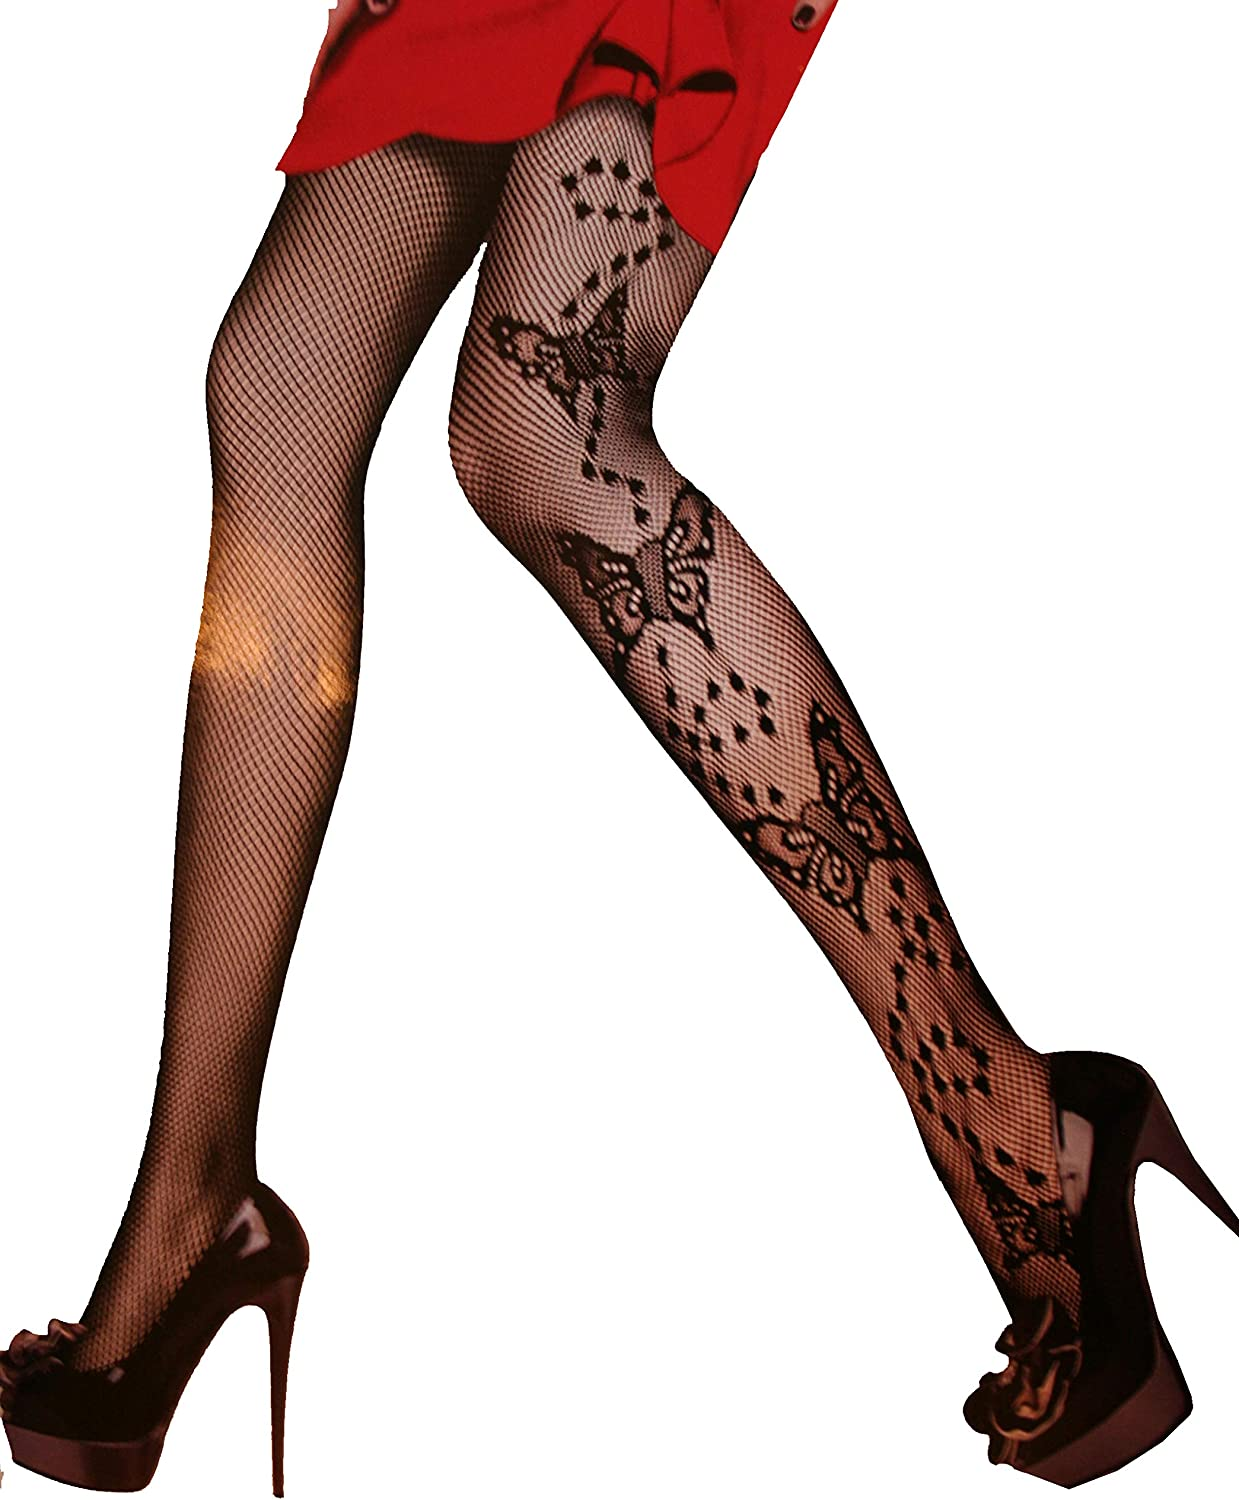 Women Sexy stockings fishnet Patterned Tights Pantyhose (type 2)